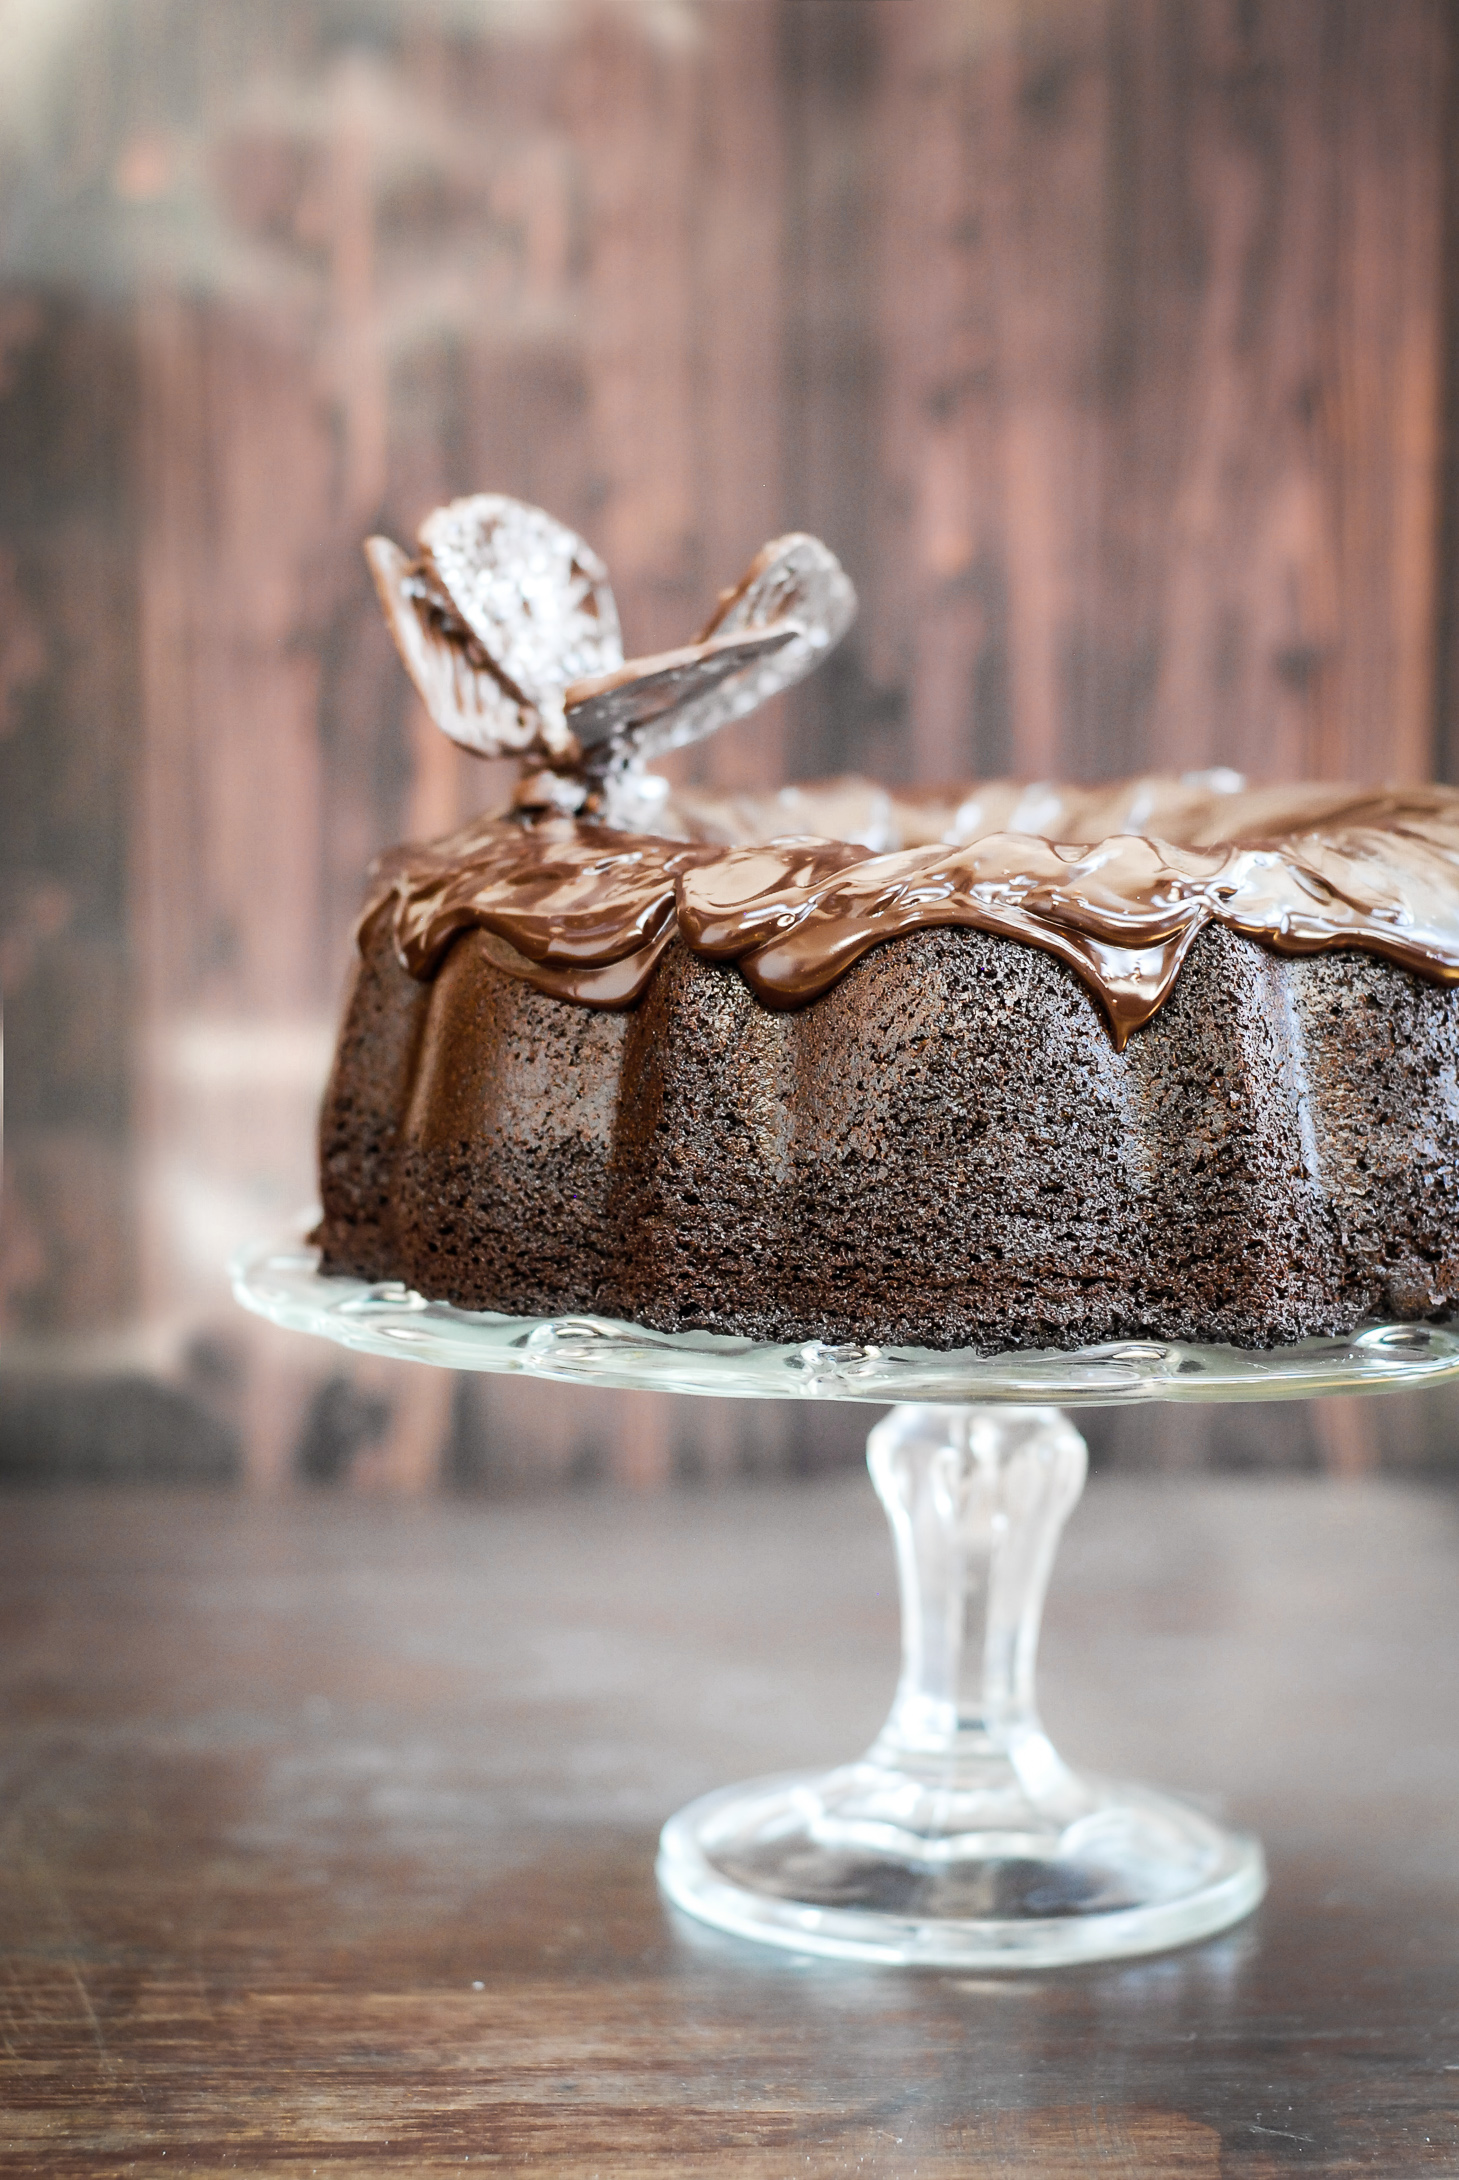 Best Ever Grain-Free Chocolate Cake